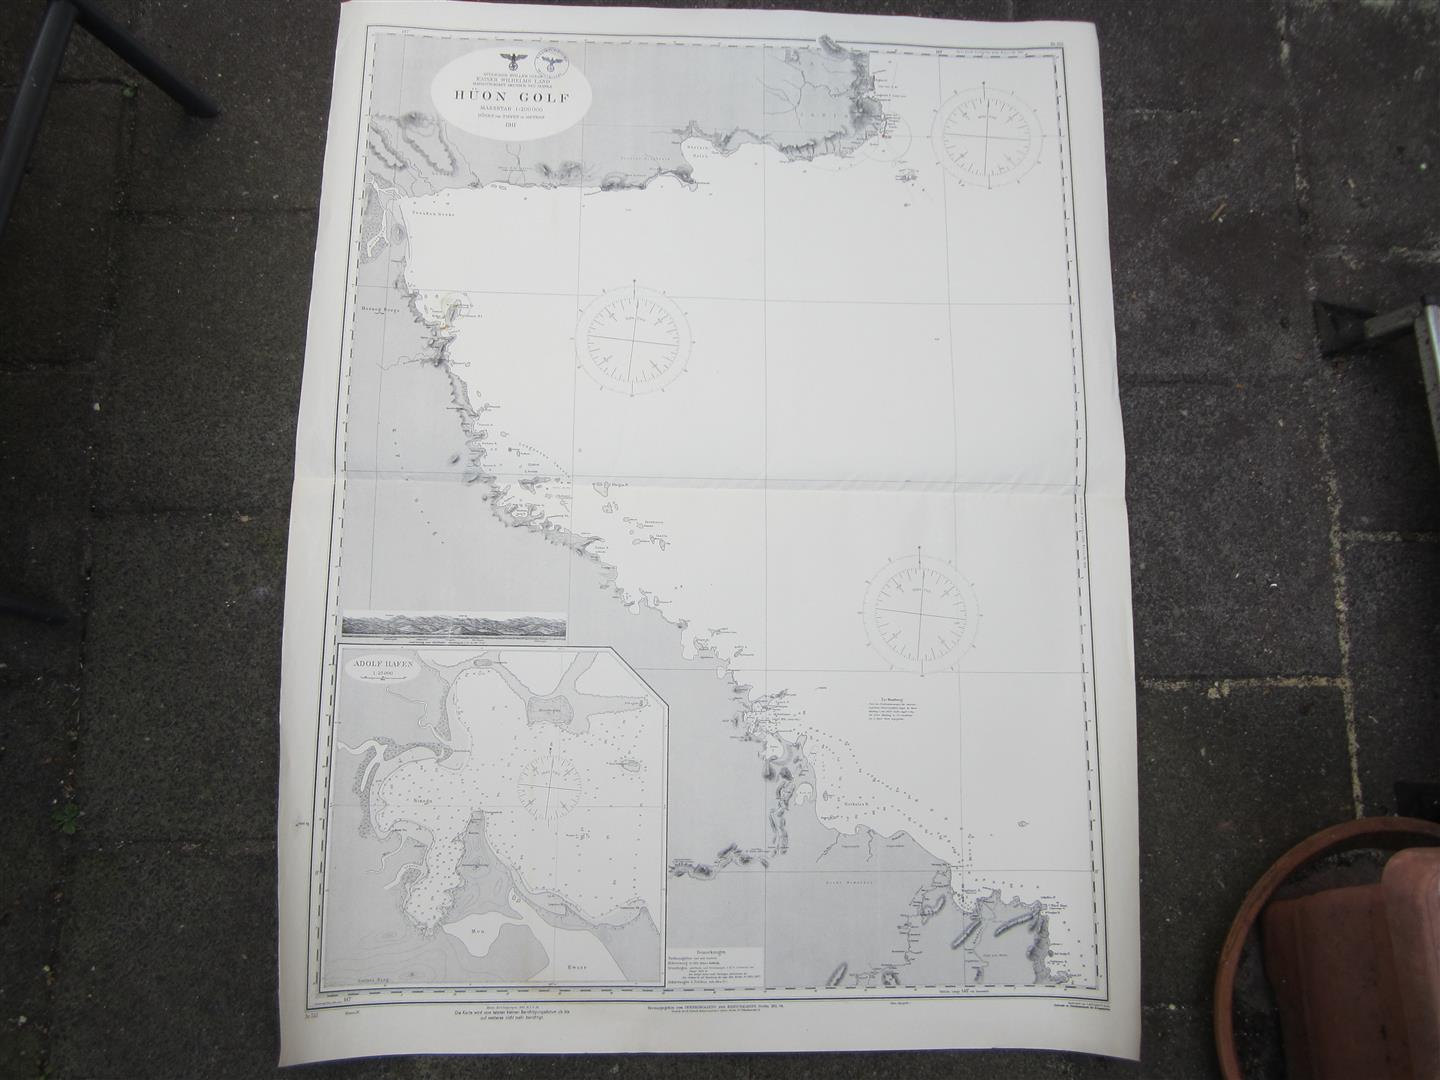 WW2 KM Sea Chart HUON GOLF, South Pacific